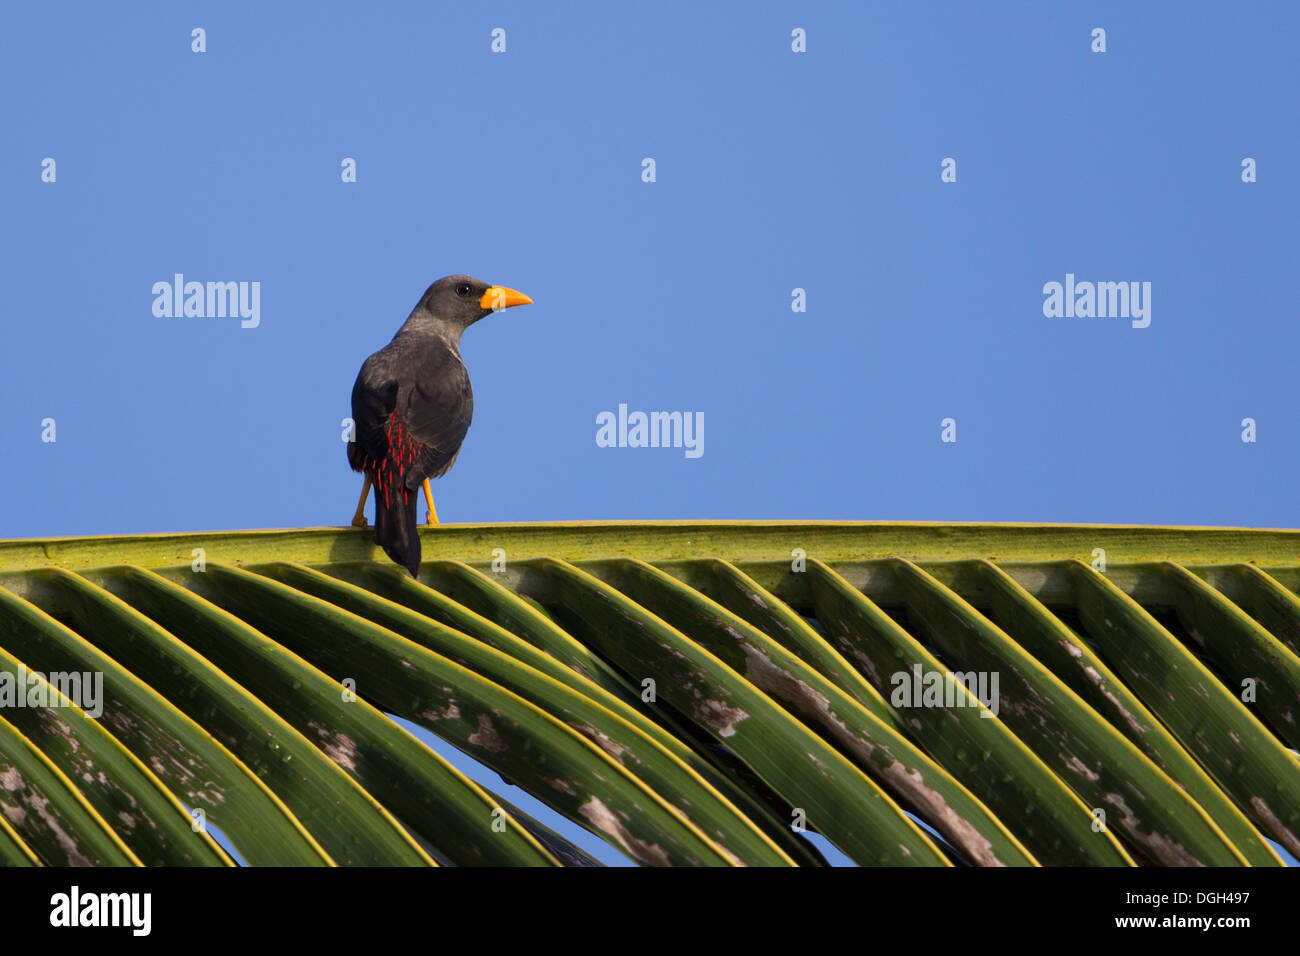 Finch-billed Myna (Scissirostrum dubium) on a palm frond at the Kungkungan Bay Resort in North Sulawesi, Indonesia. - Stock Image